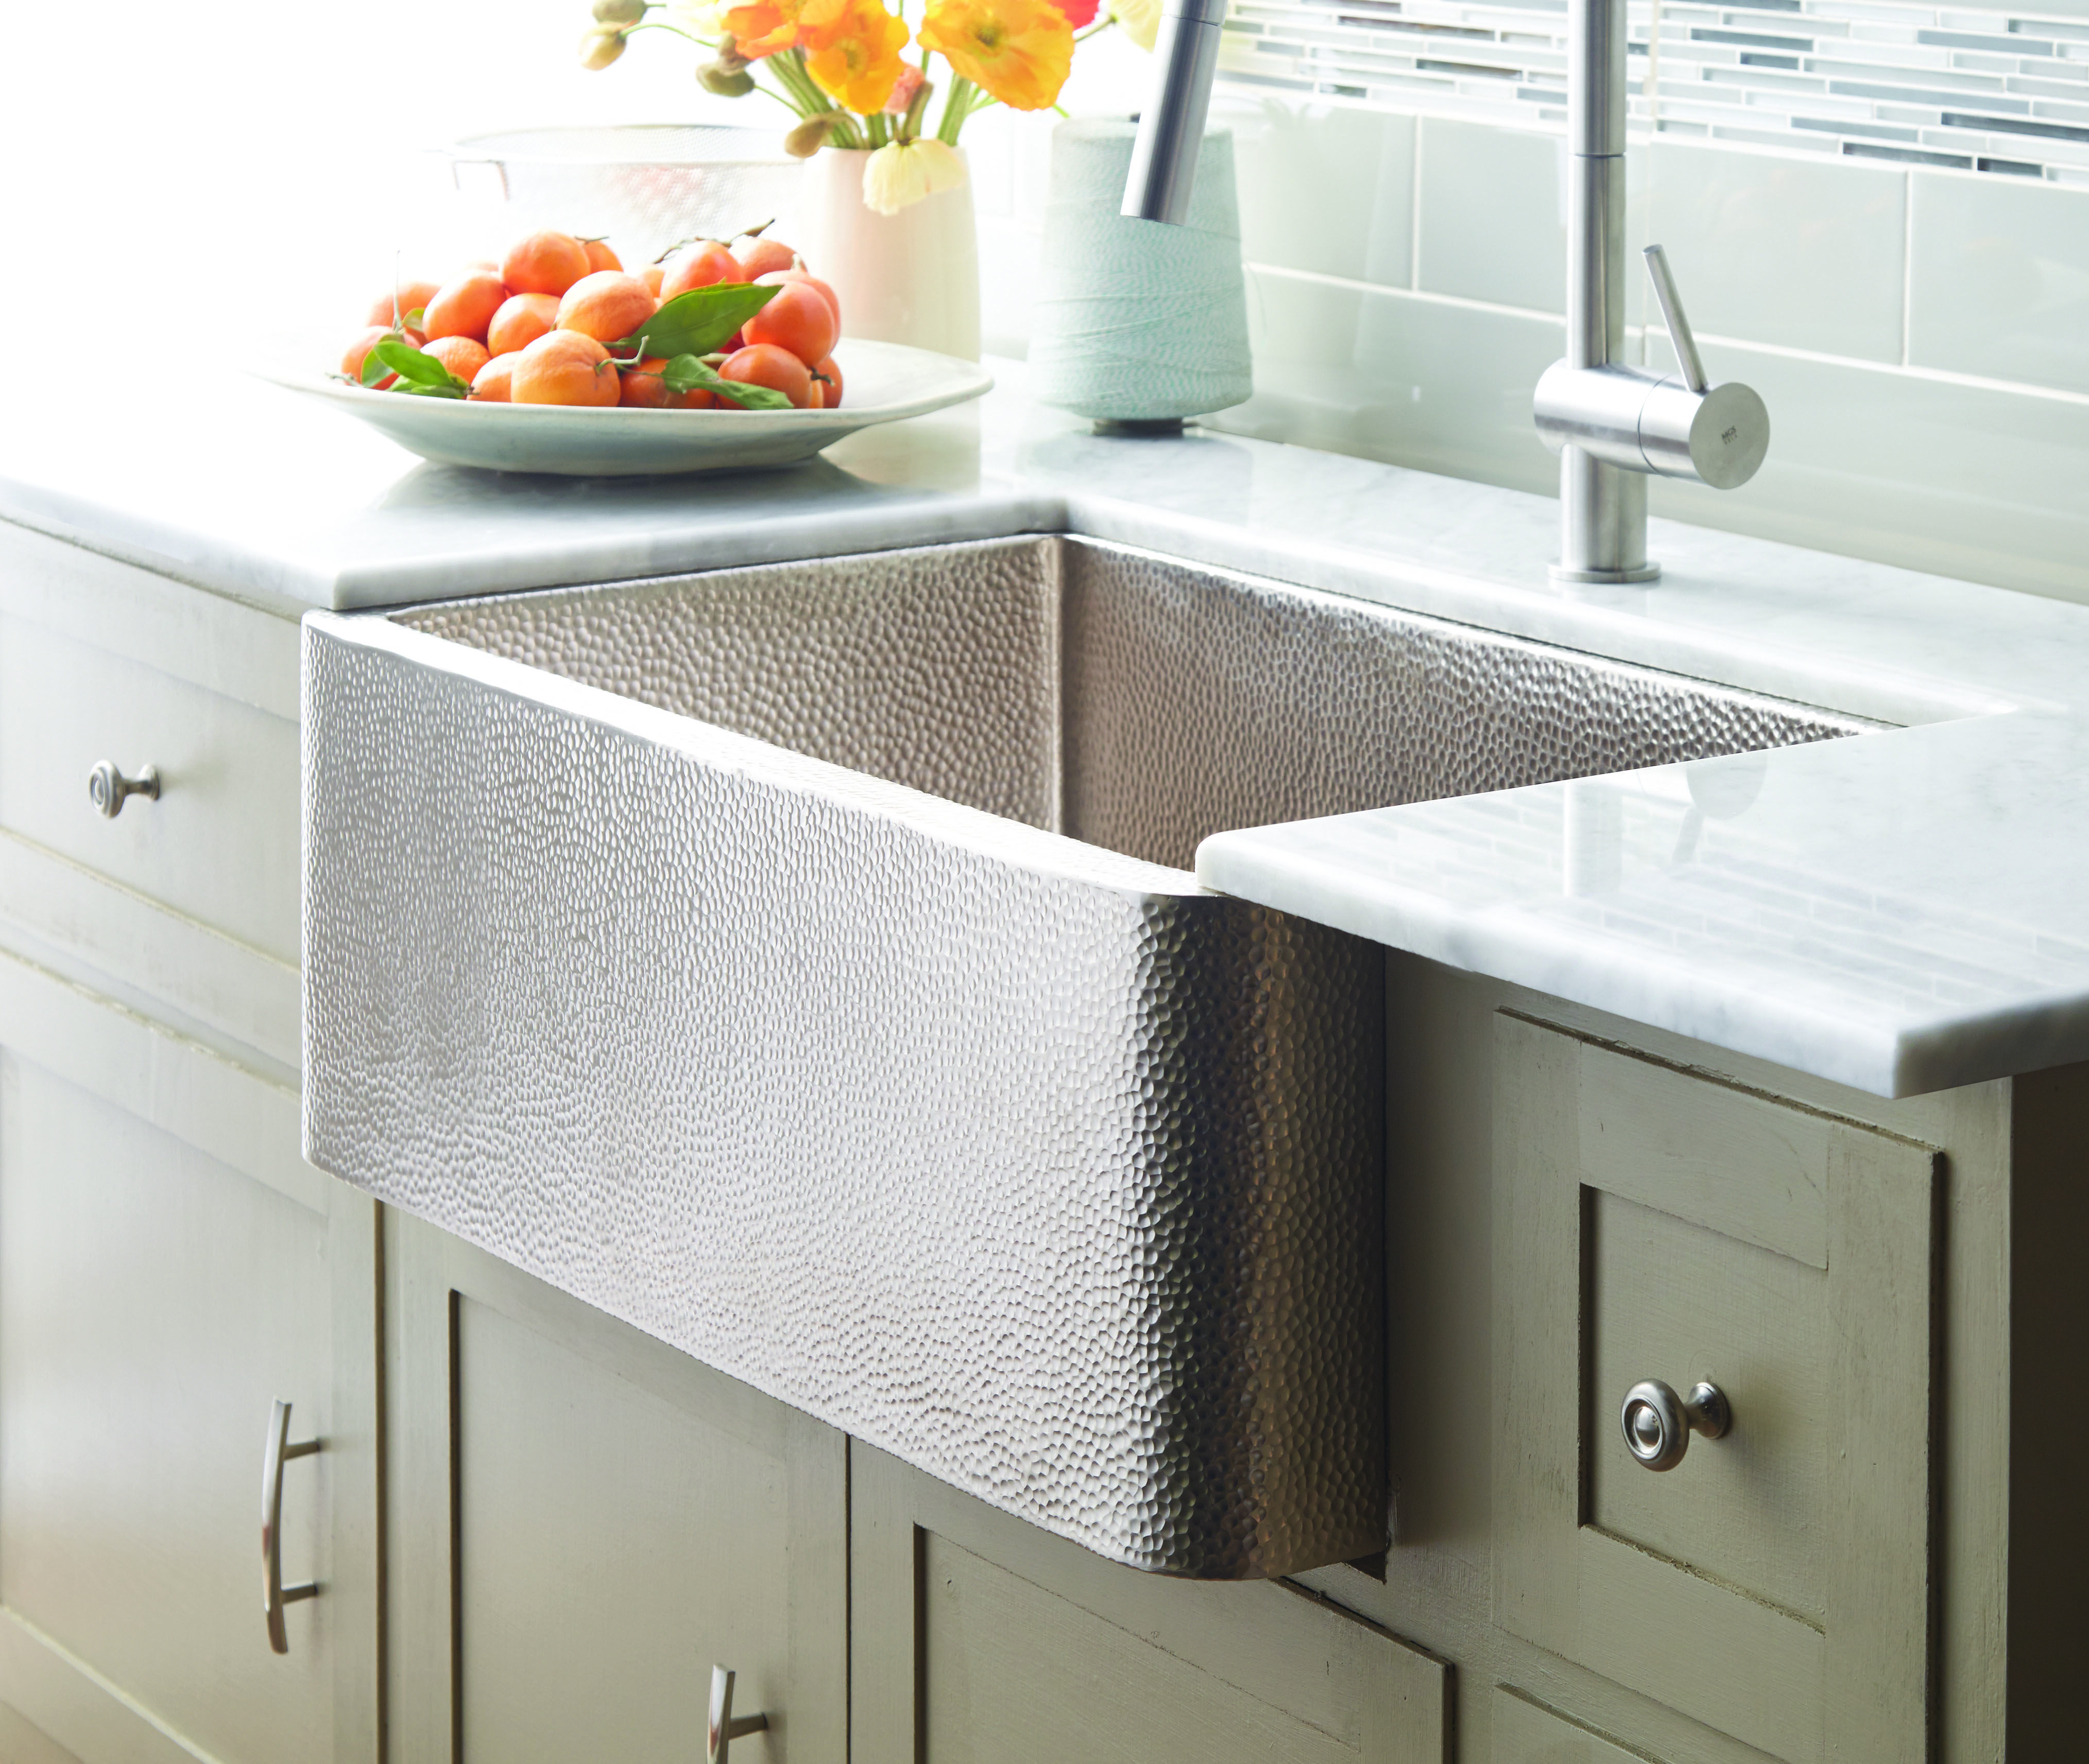 Farmhouse 30 Sets A Precedent For Popularity This 30 Inch Single Basin Farmhouse Sink Offers A Apron Front Kitchen Sink Copper Kitchen Sink Apron Sink Kitchen